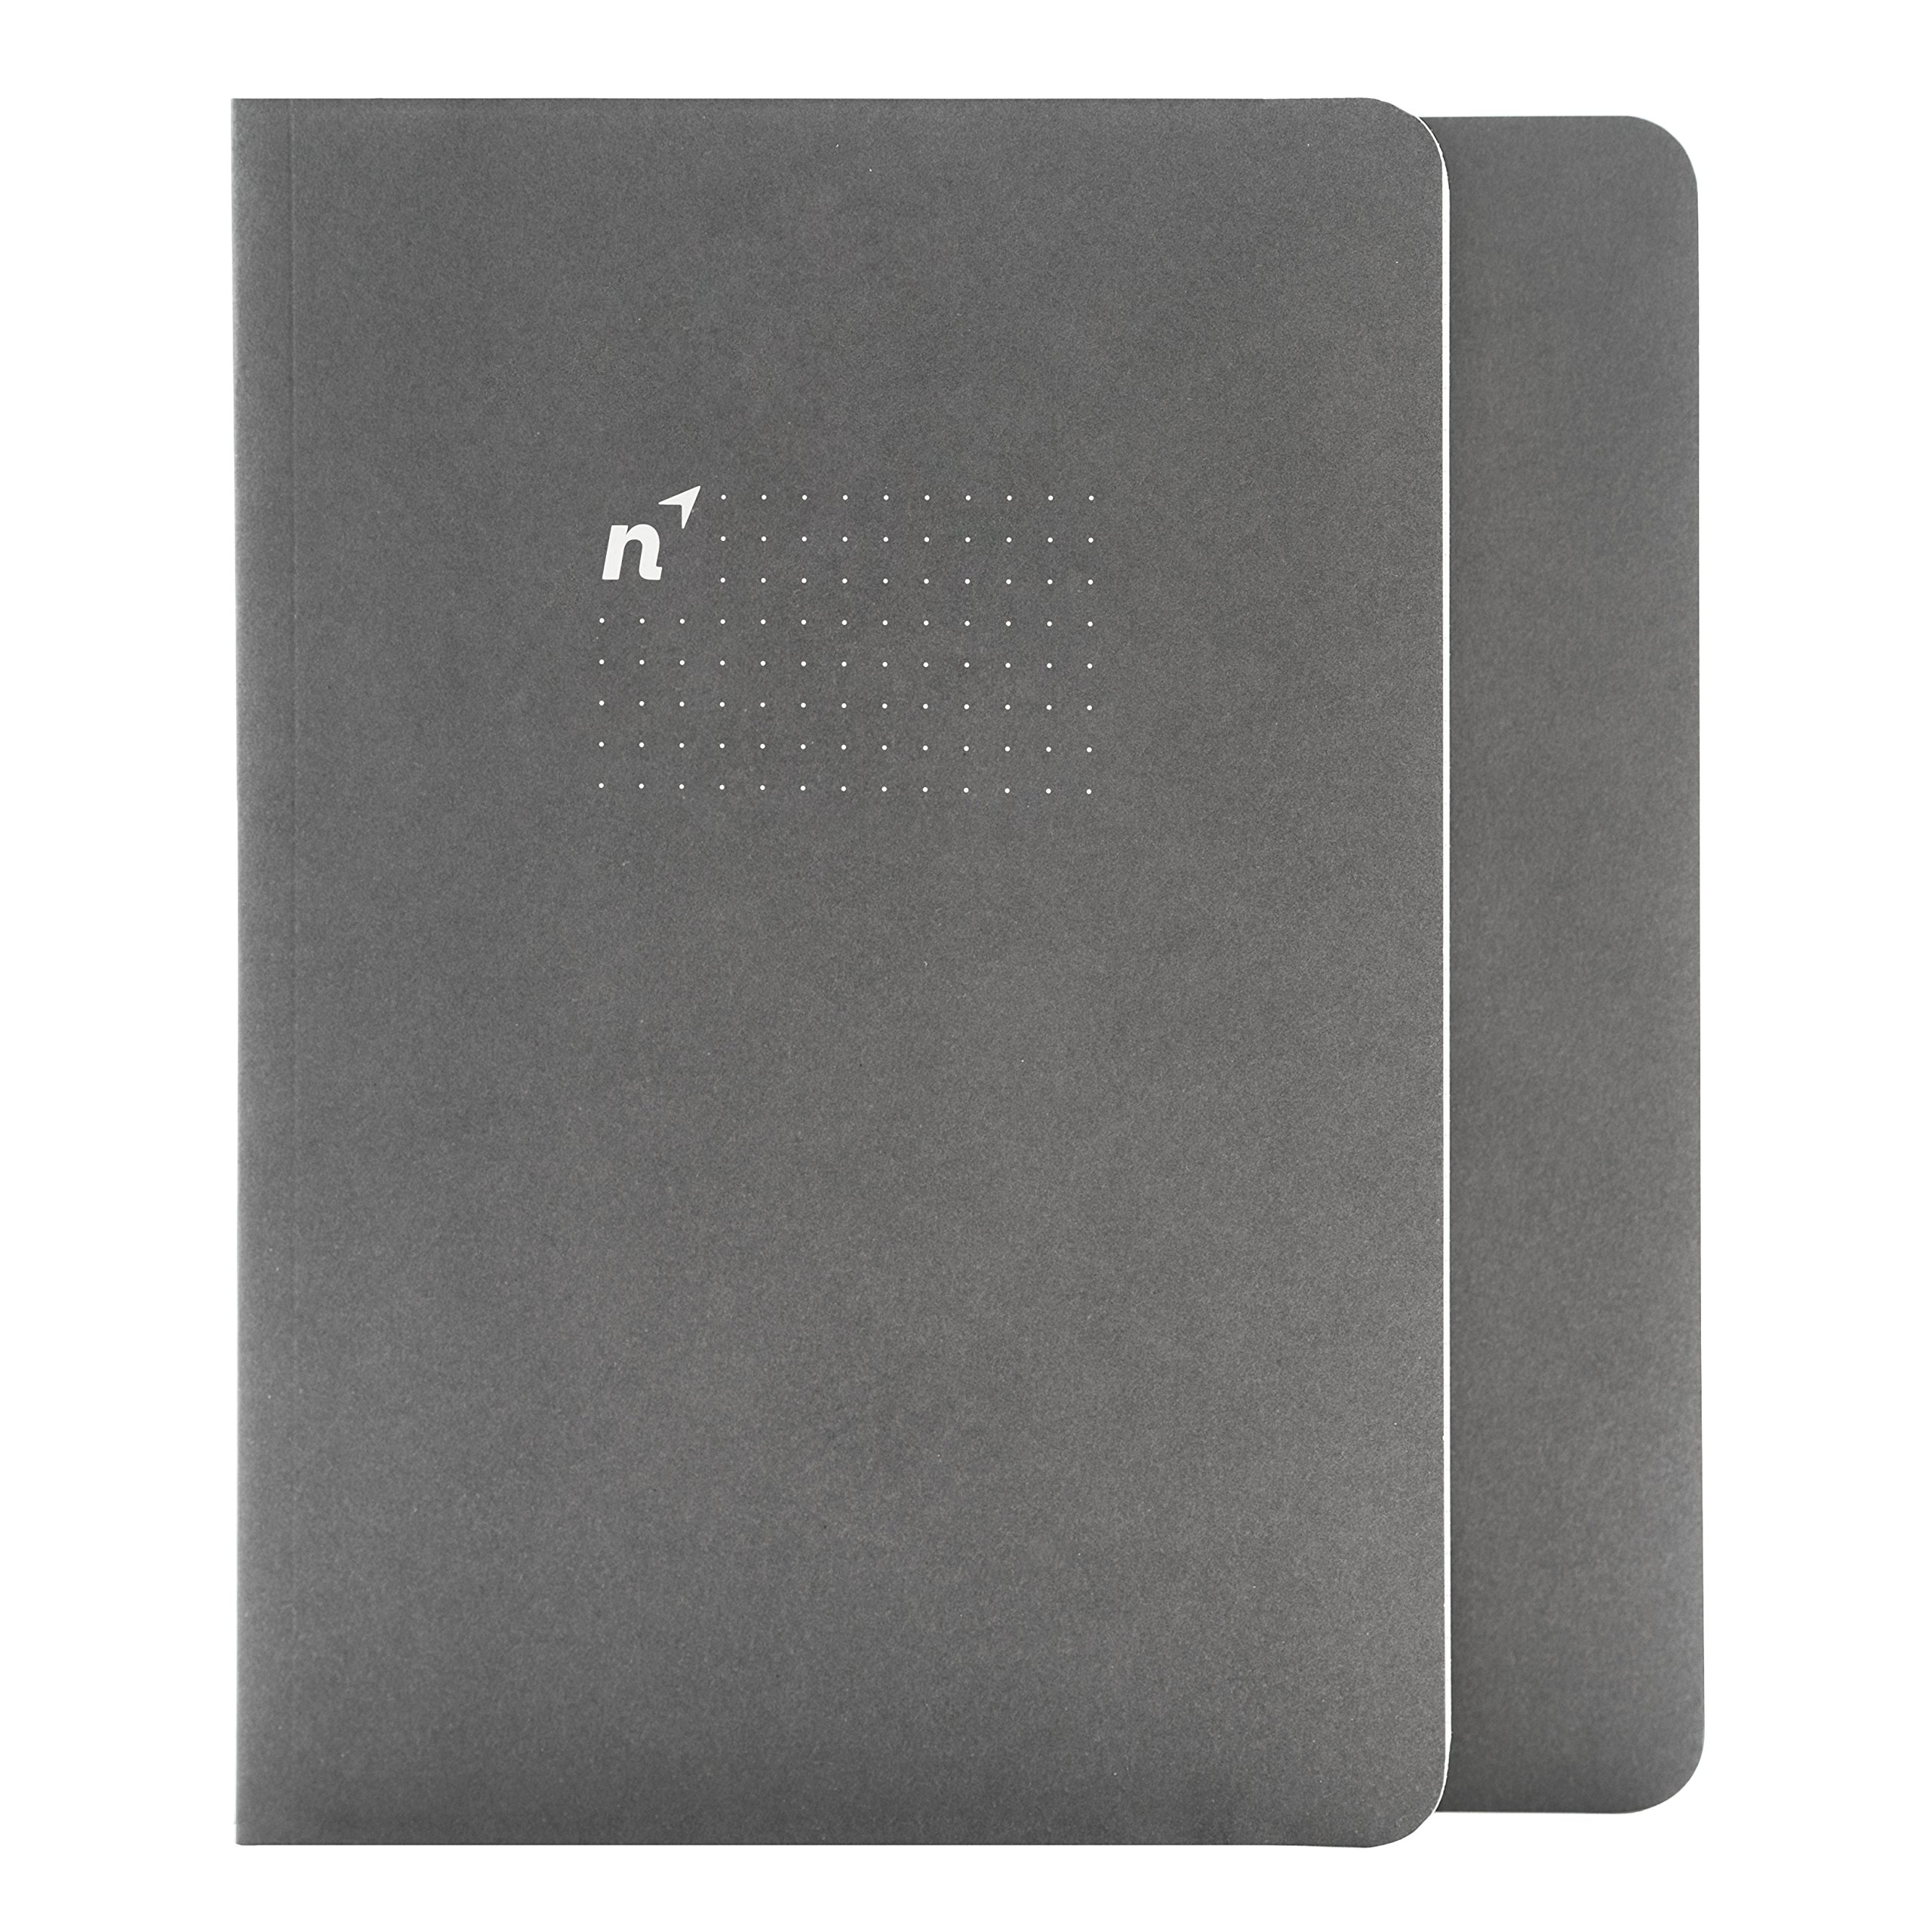 Northbooks USA Eco A5 Dotted Bullet Notebook/Sewn Journal | 144 5mm Dot Grid Pages | Notepad for School, Work, Travel or Personal Use | Premium Recycled Cream Paper | 5.8 x 8.2 inch, 2 Pack